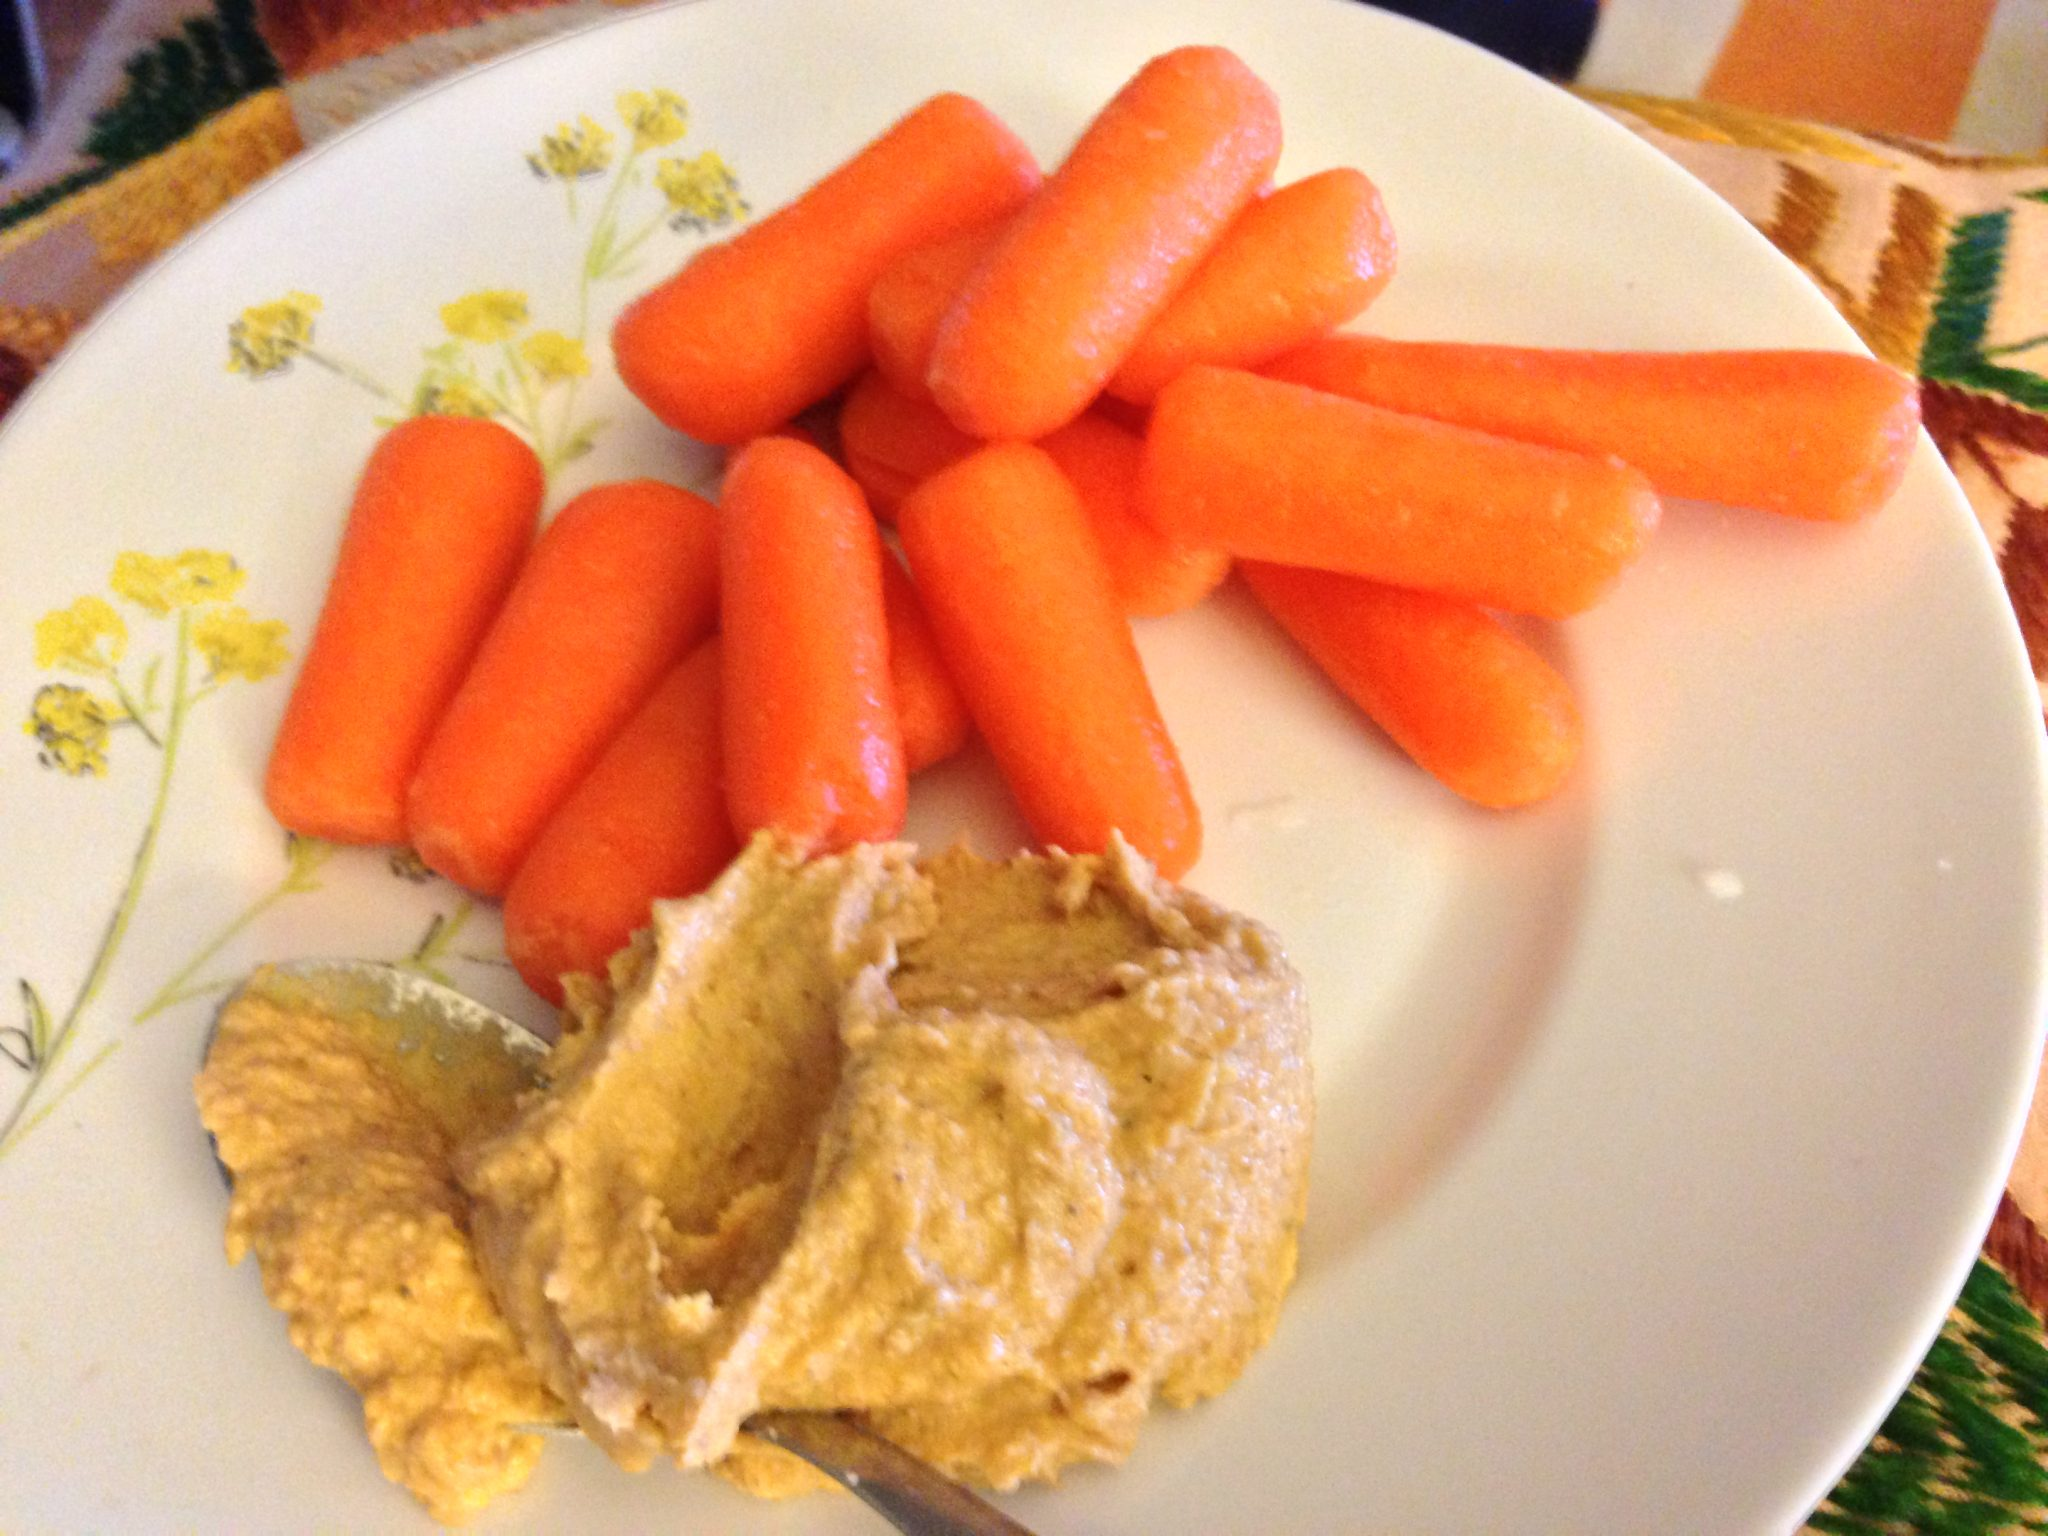 Homemade Hummus without Tahini